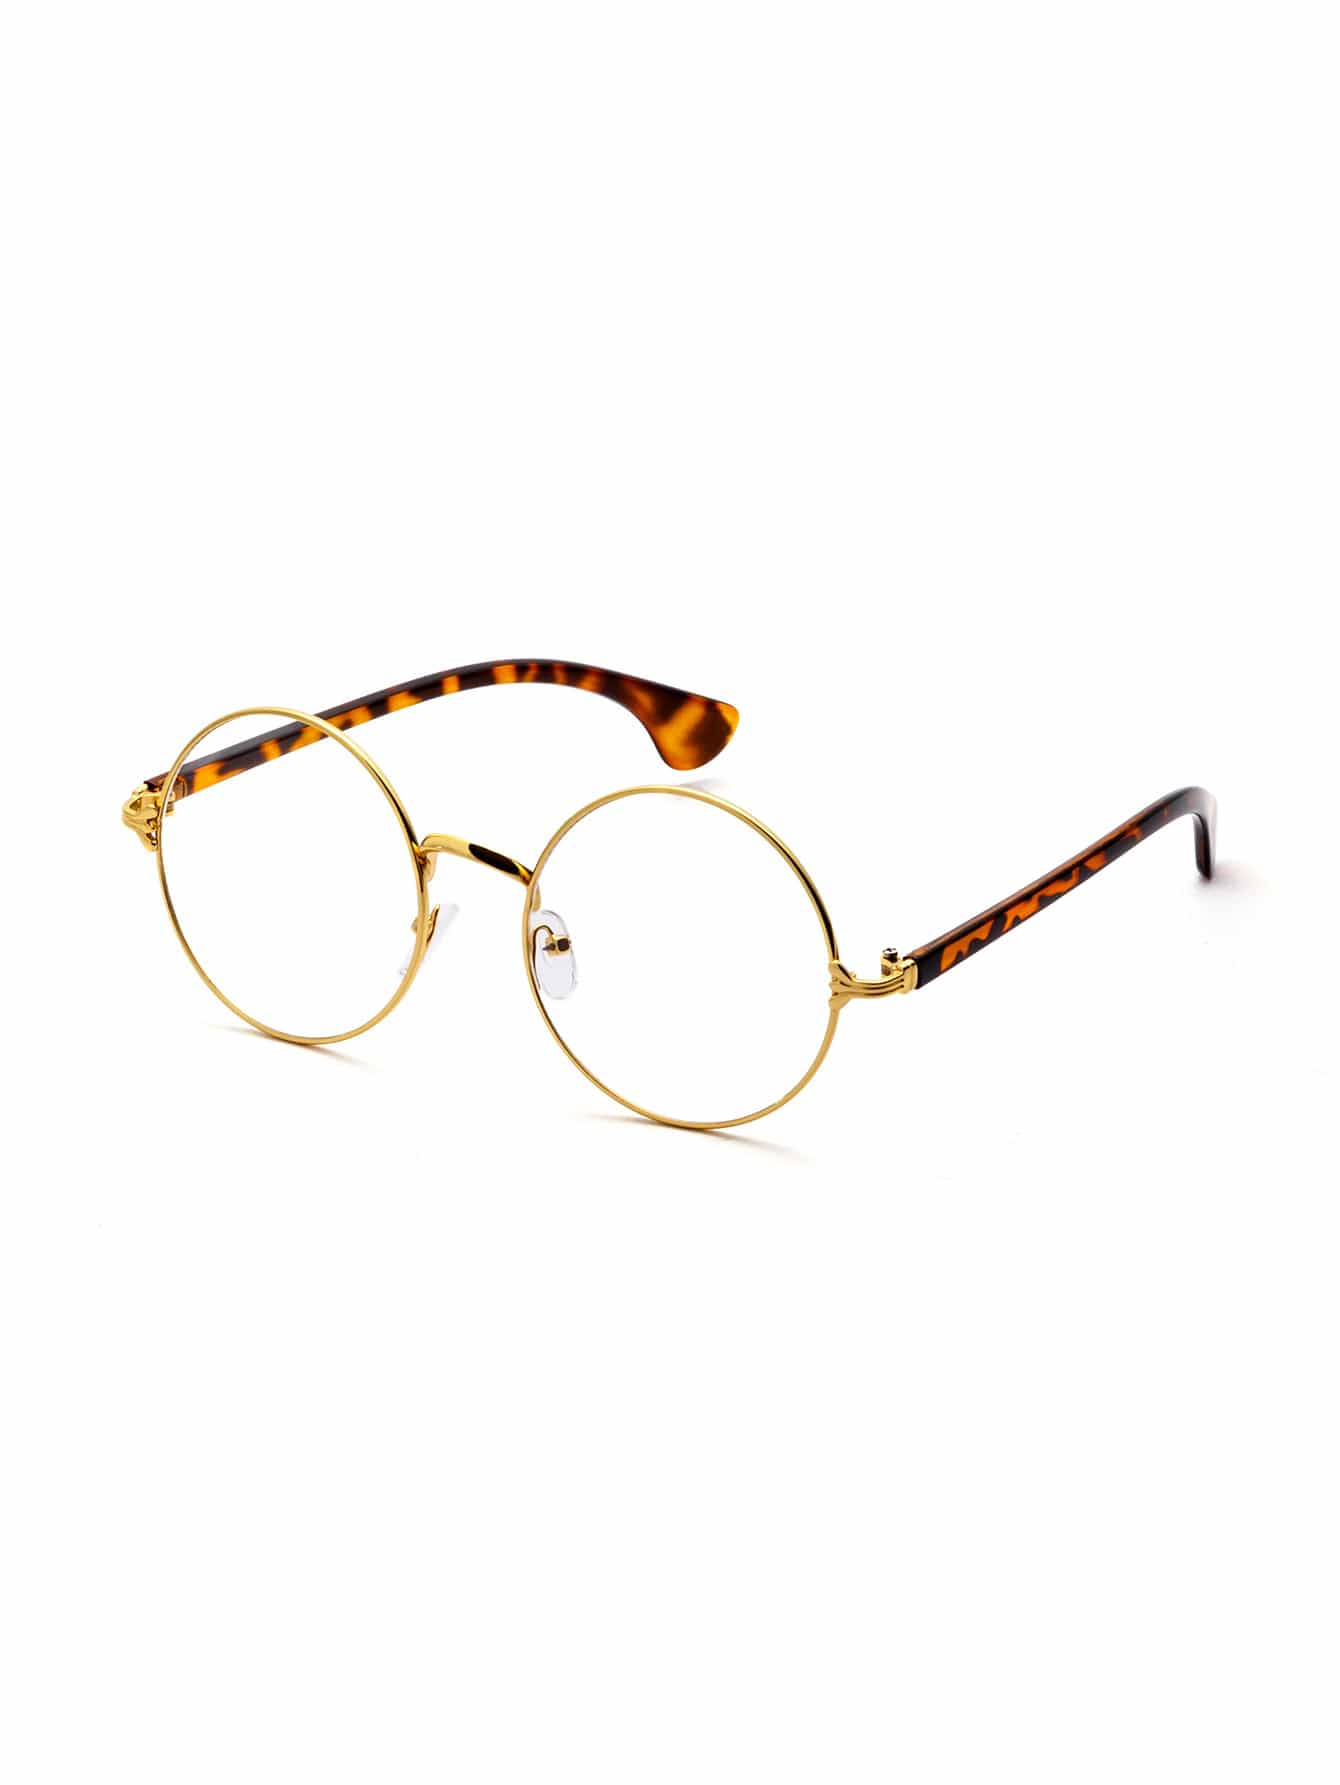 Glasses Frame And Lens : Gold And Leopard Frame Clear Lens Round Glasses -SheIn ...